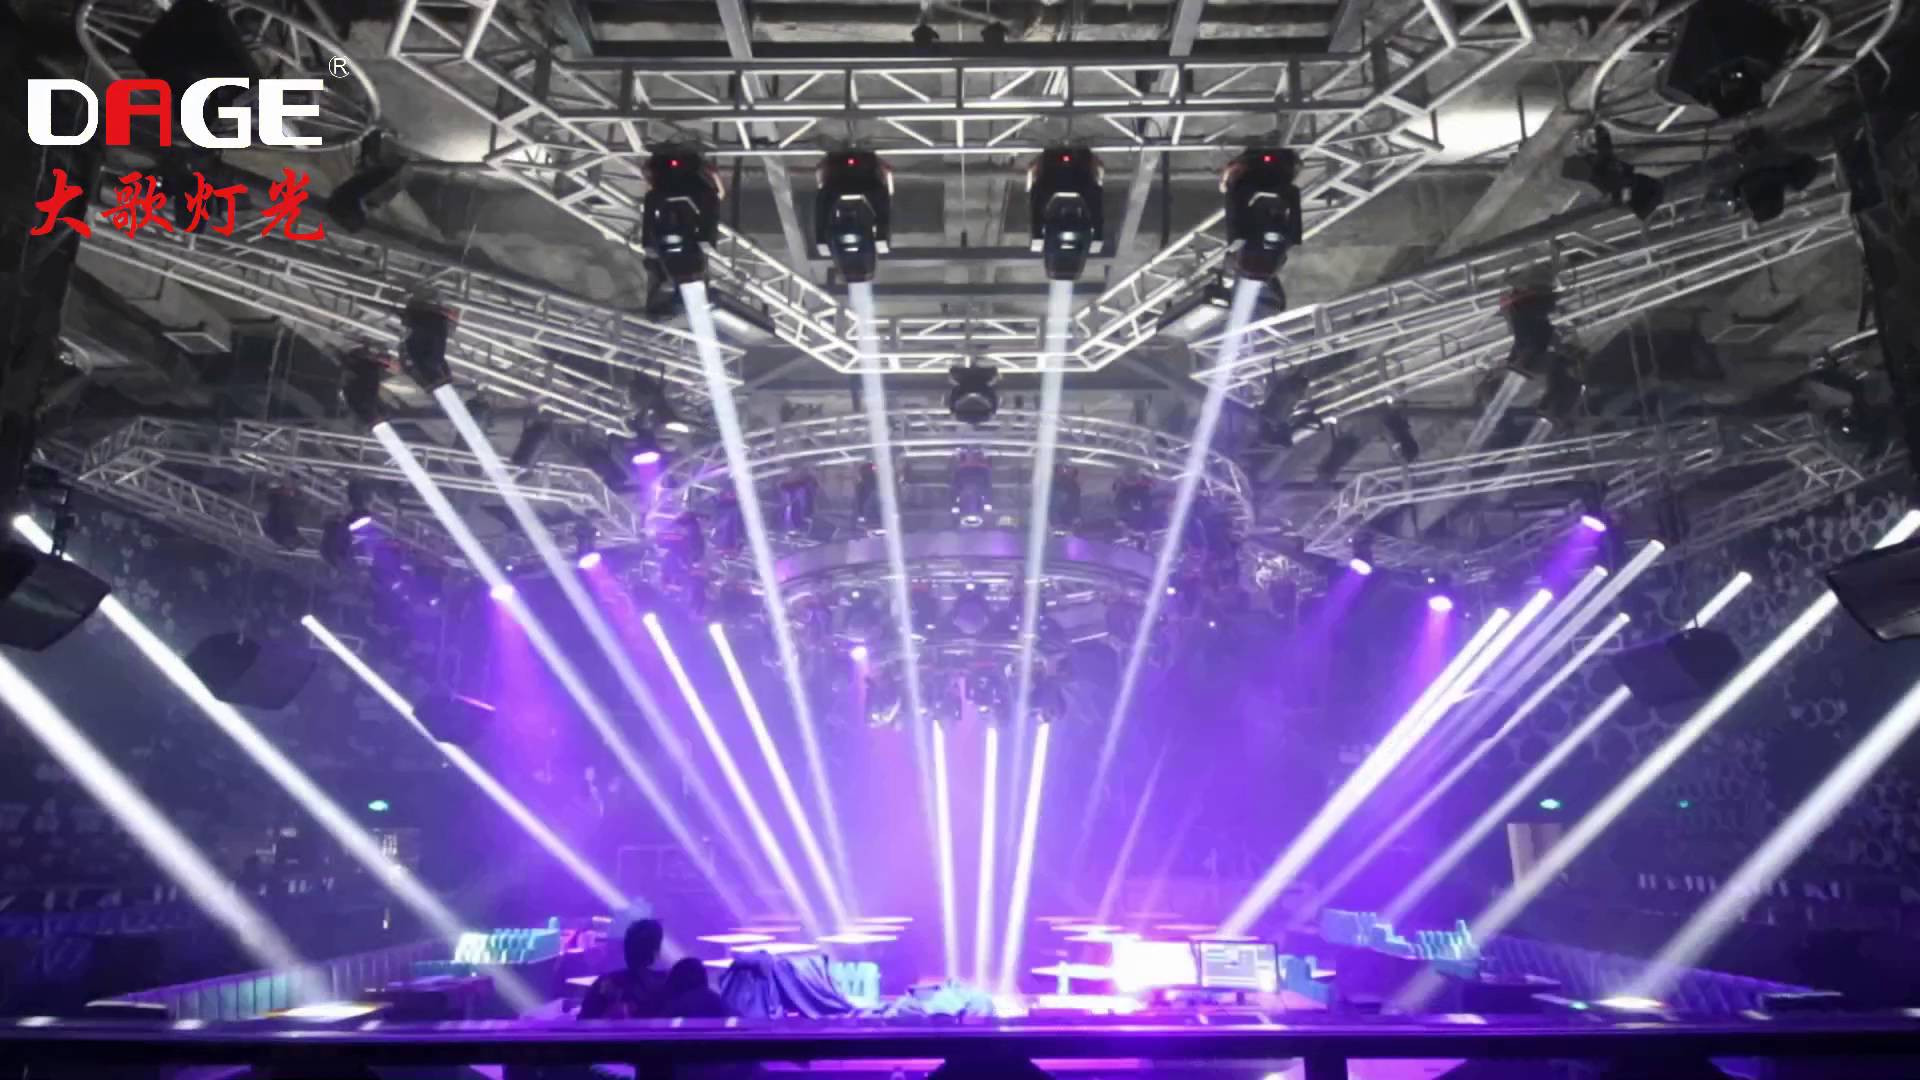 Best ideas about Pro Sound And Stage Lighting . Save or Pin Night Club Lighting Show DAGE Lights 7r Beam Moving Head Now.